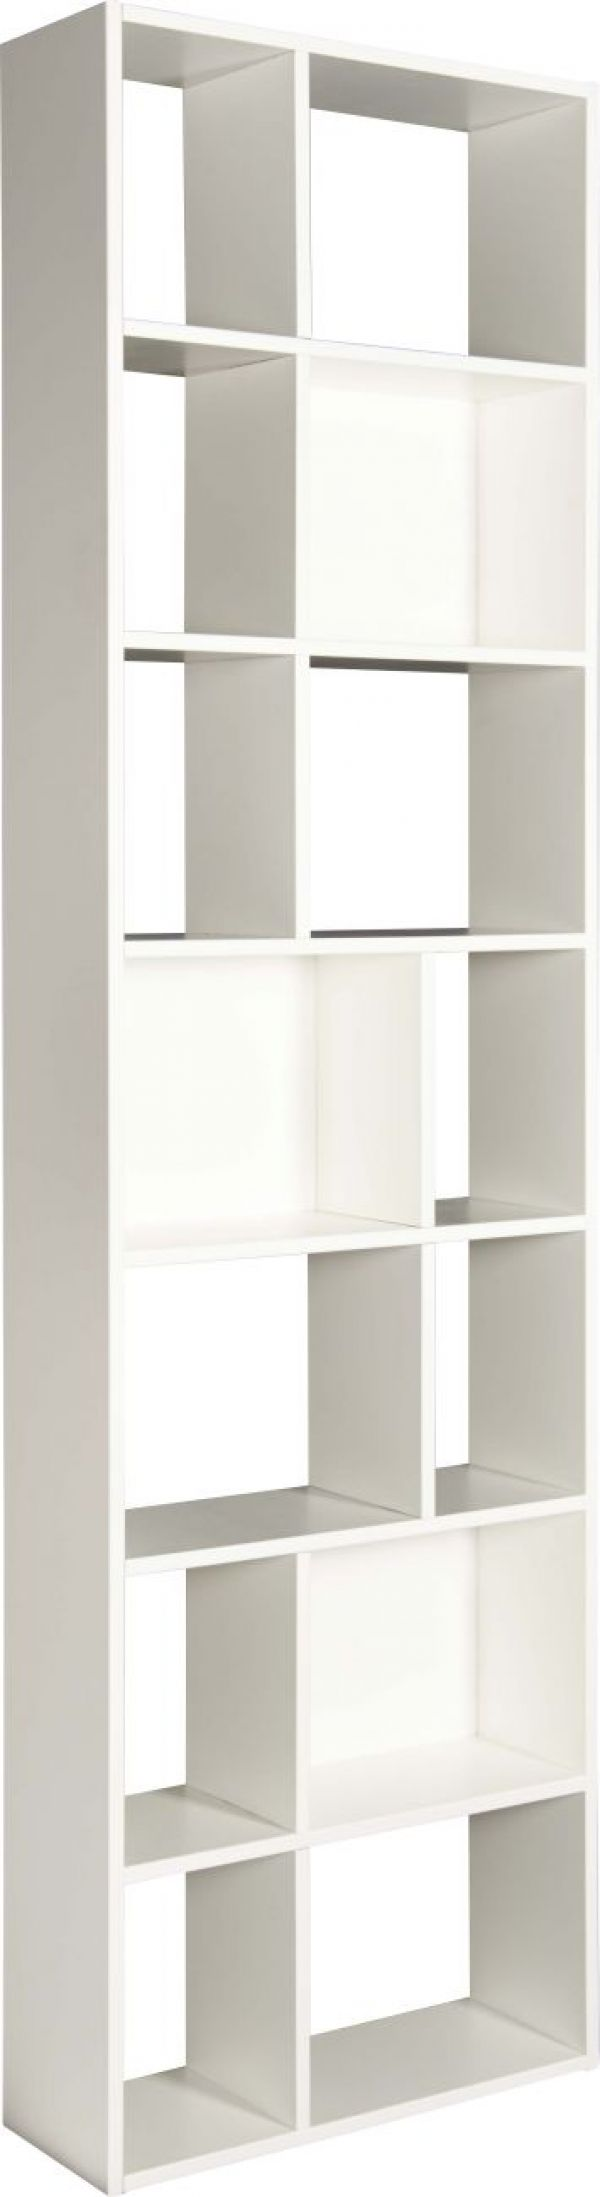 etagere murale profondeur 40 cm id es de d coration. Black Bedroom Furniture Sets. Home Design Ideas